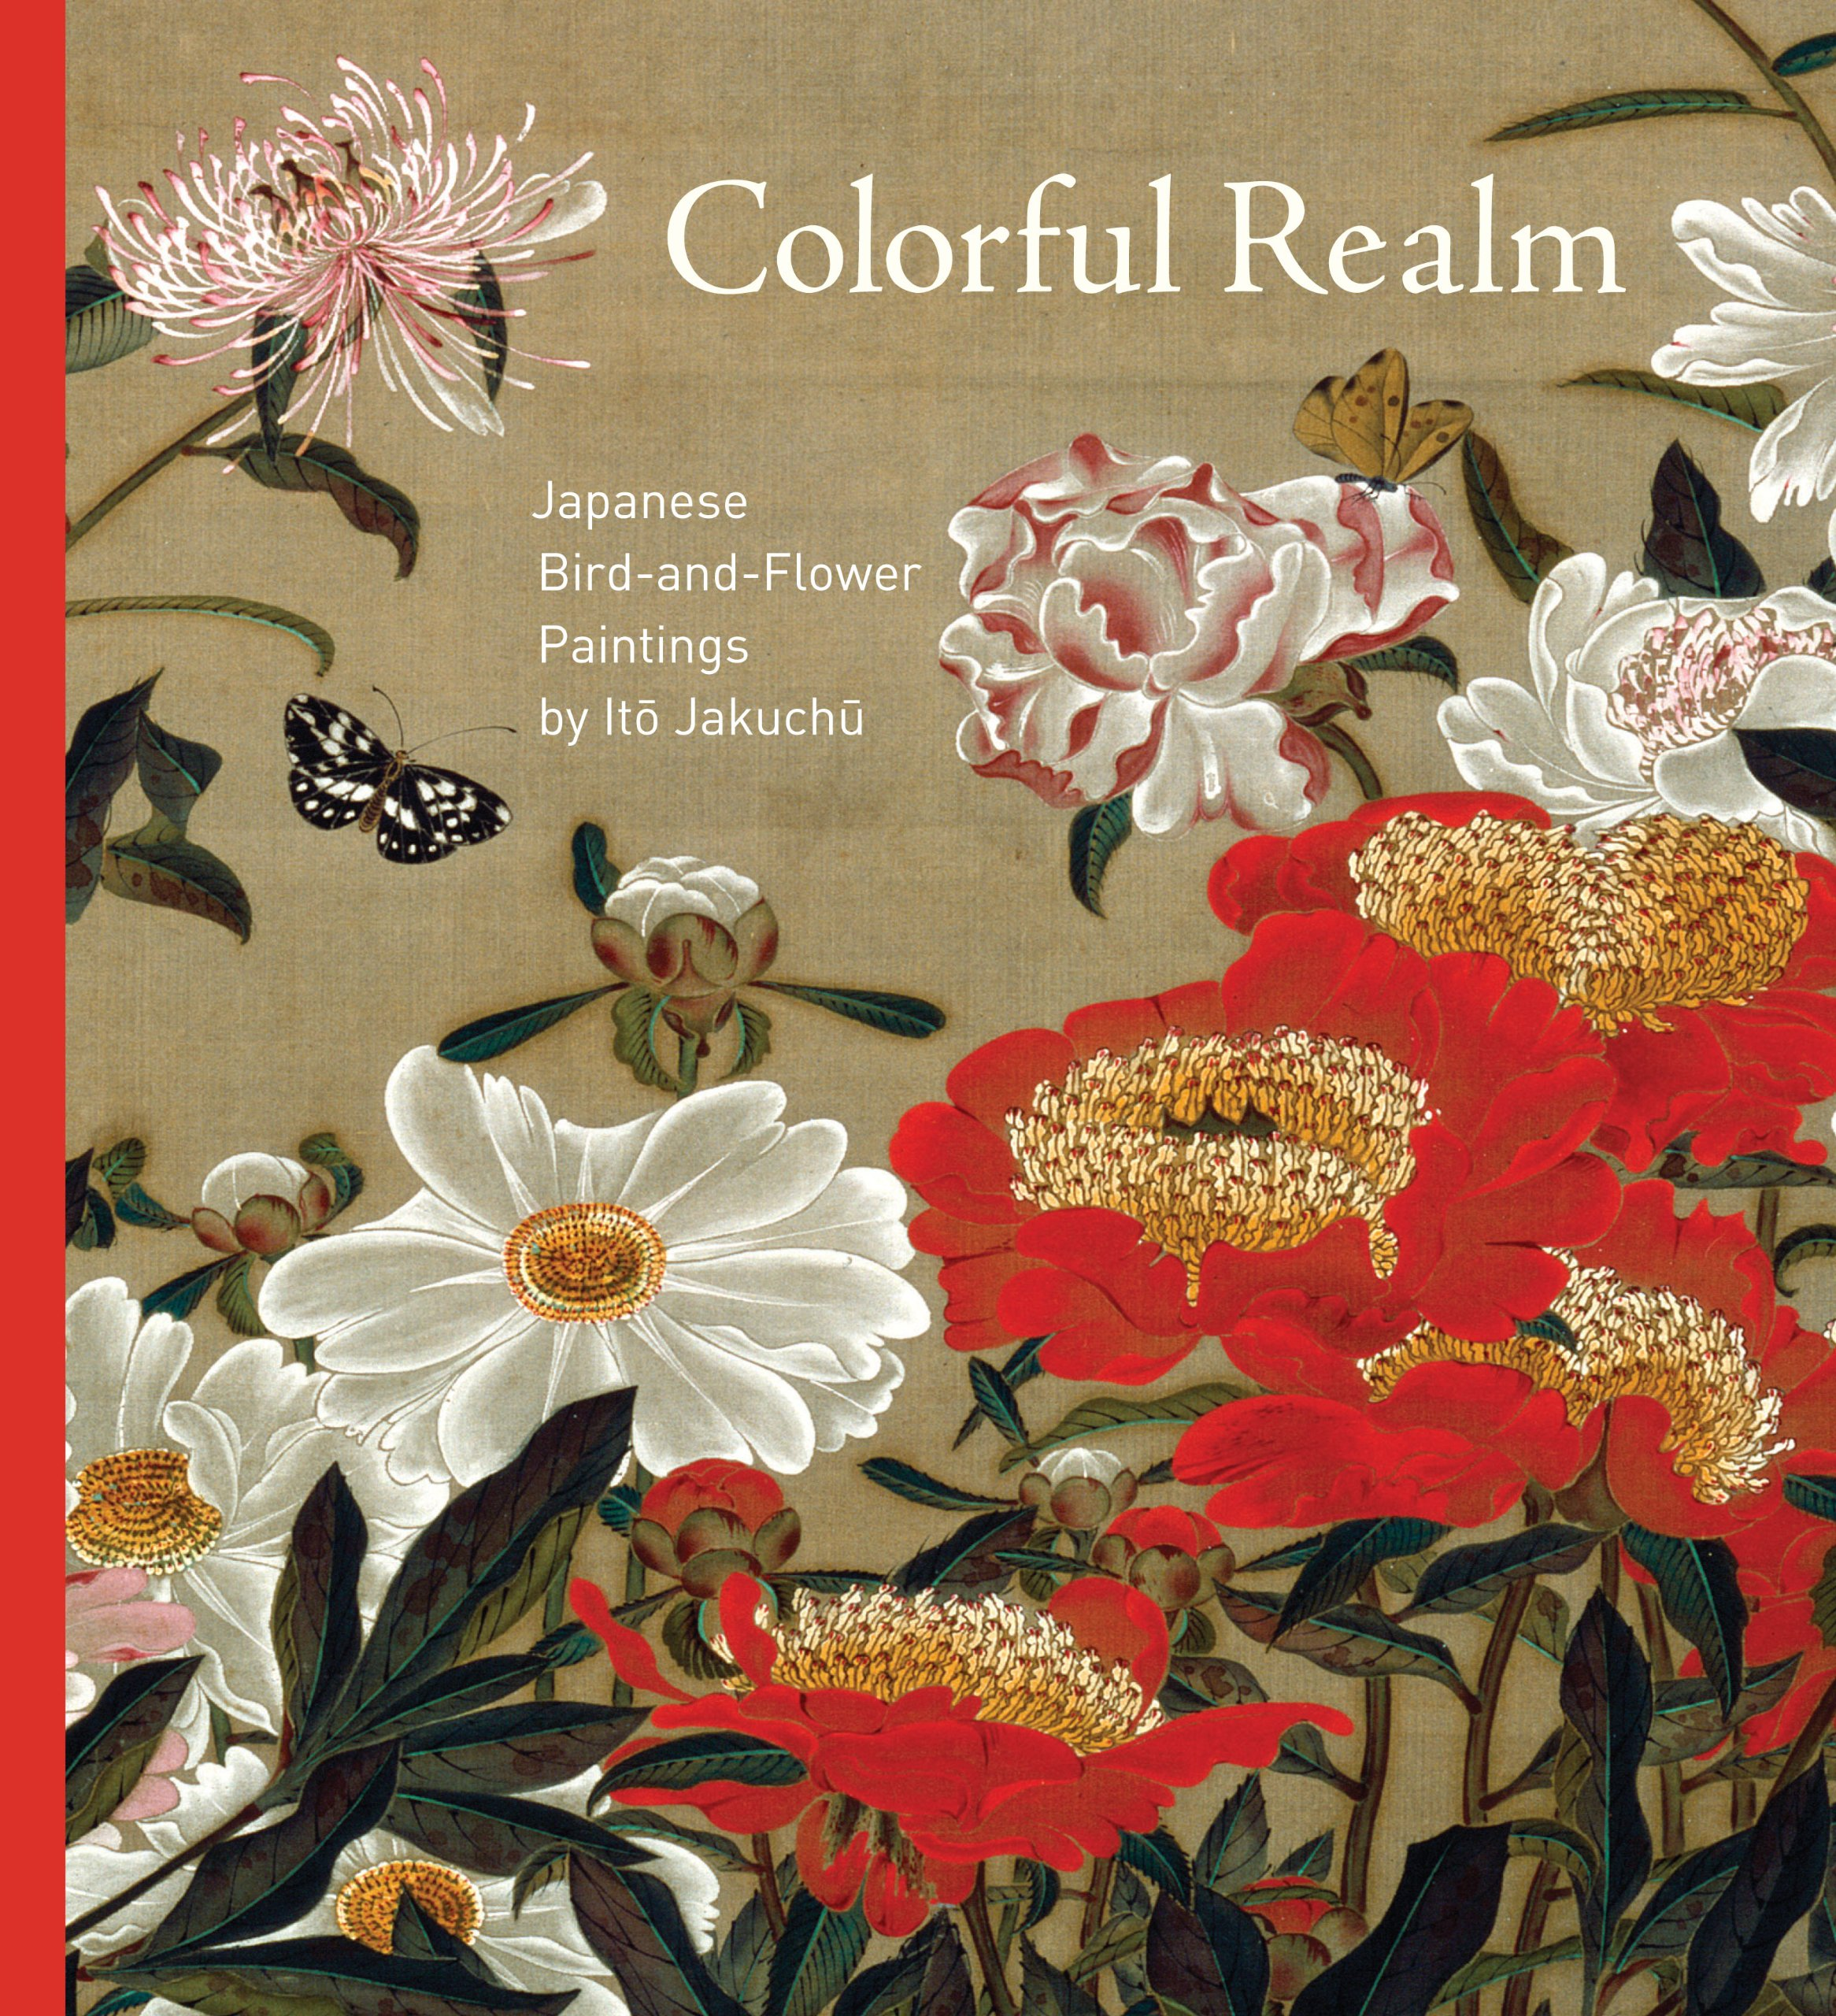 Colorful Realm: Japanese Bird-and-Flower Paintings by Ito Jakuchu ebook